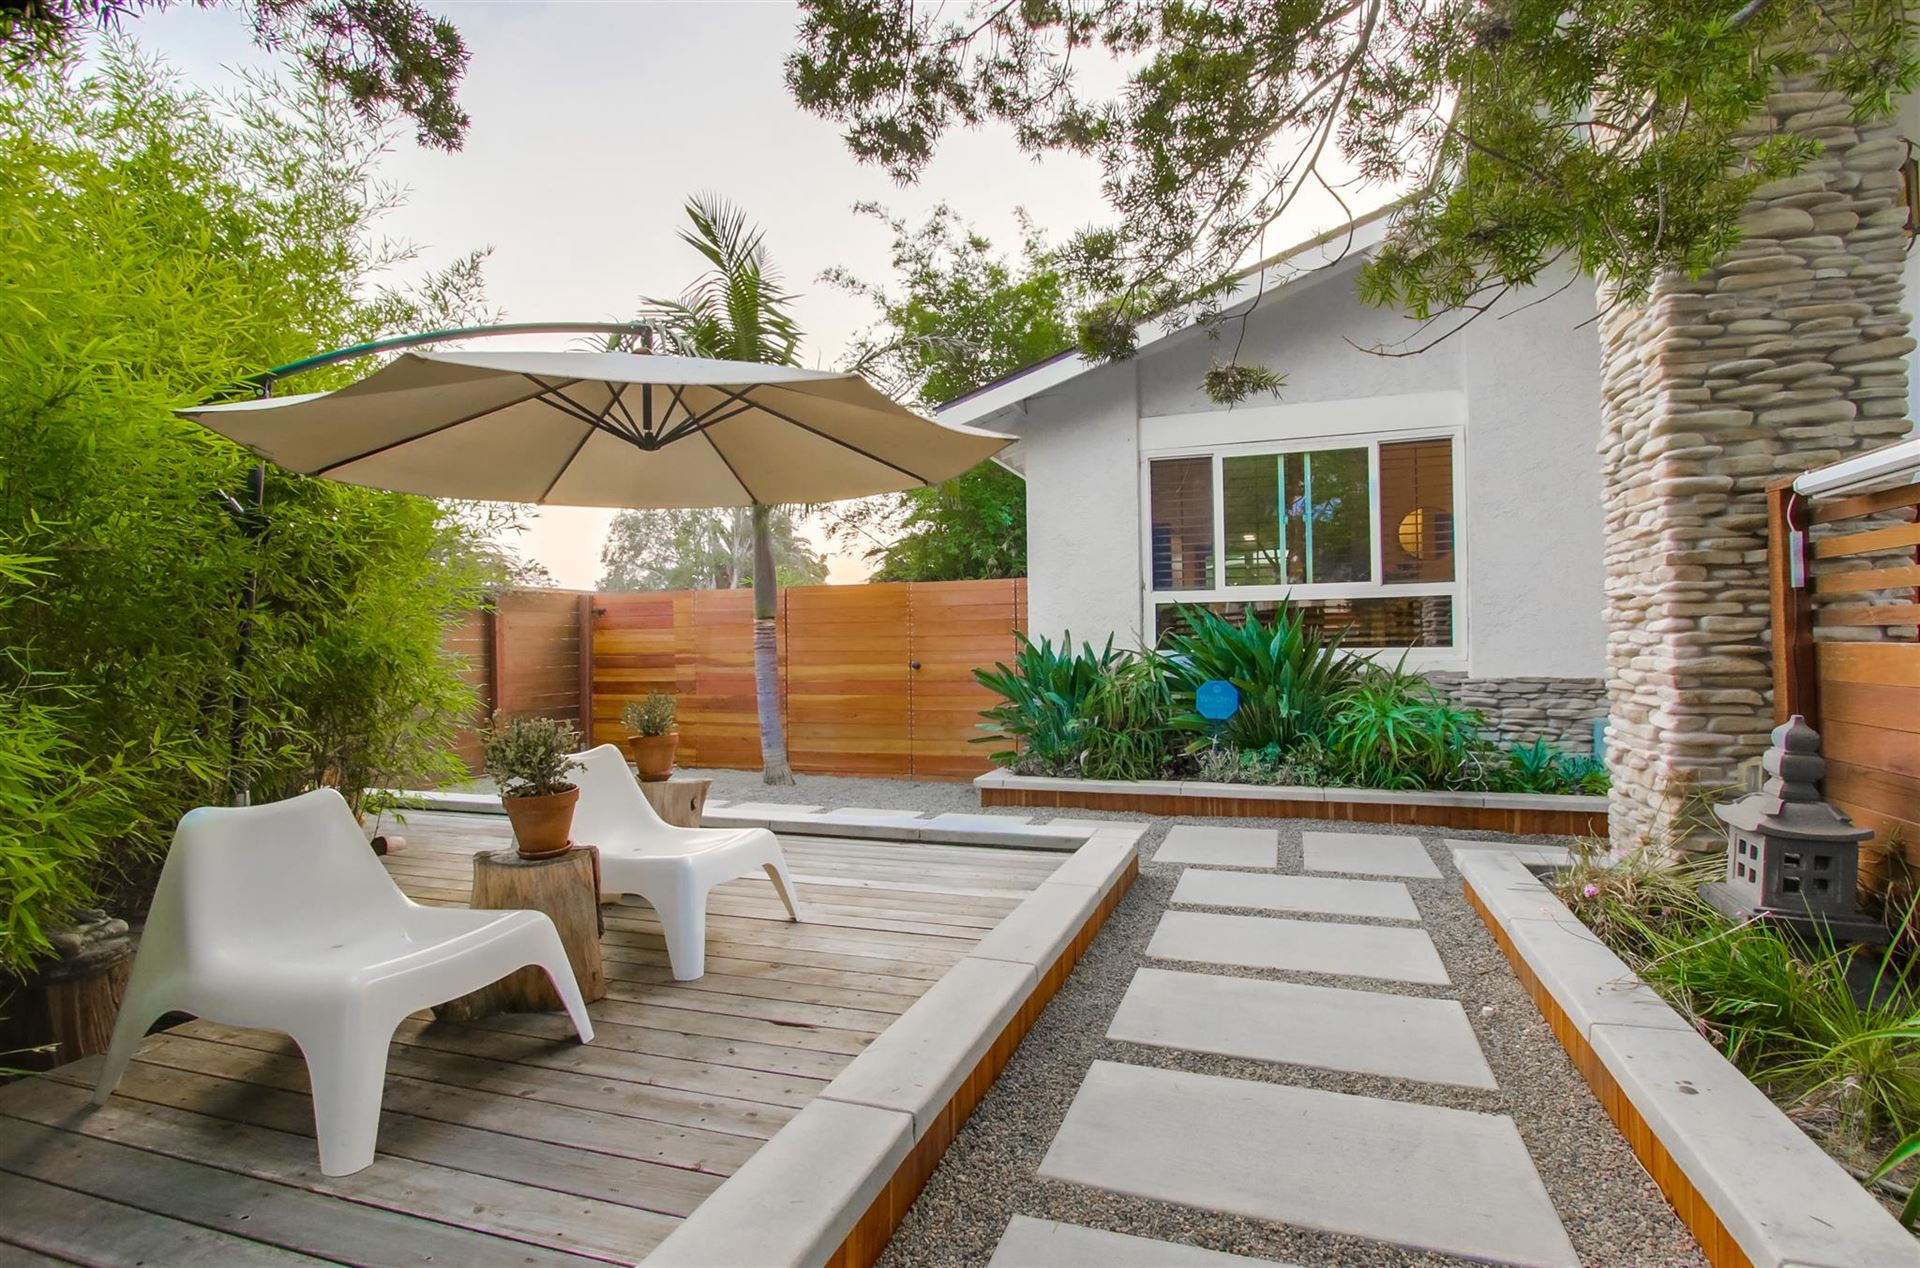 Photo of 316 Cerro Street, Encinitas, CA 92024 (MLS # 200046056)